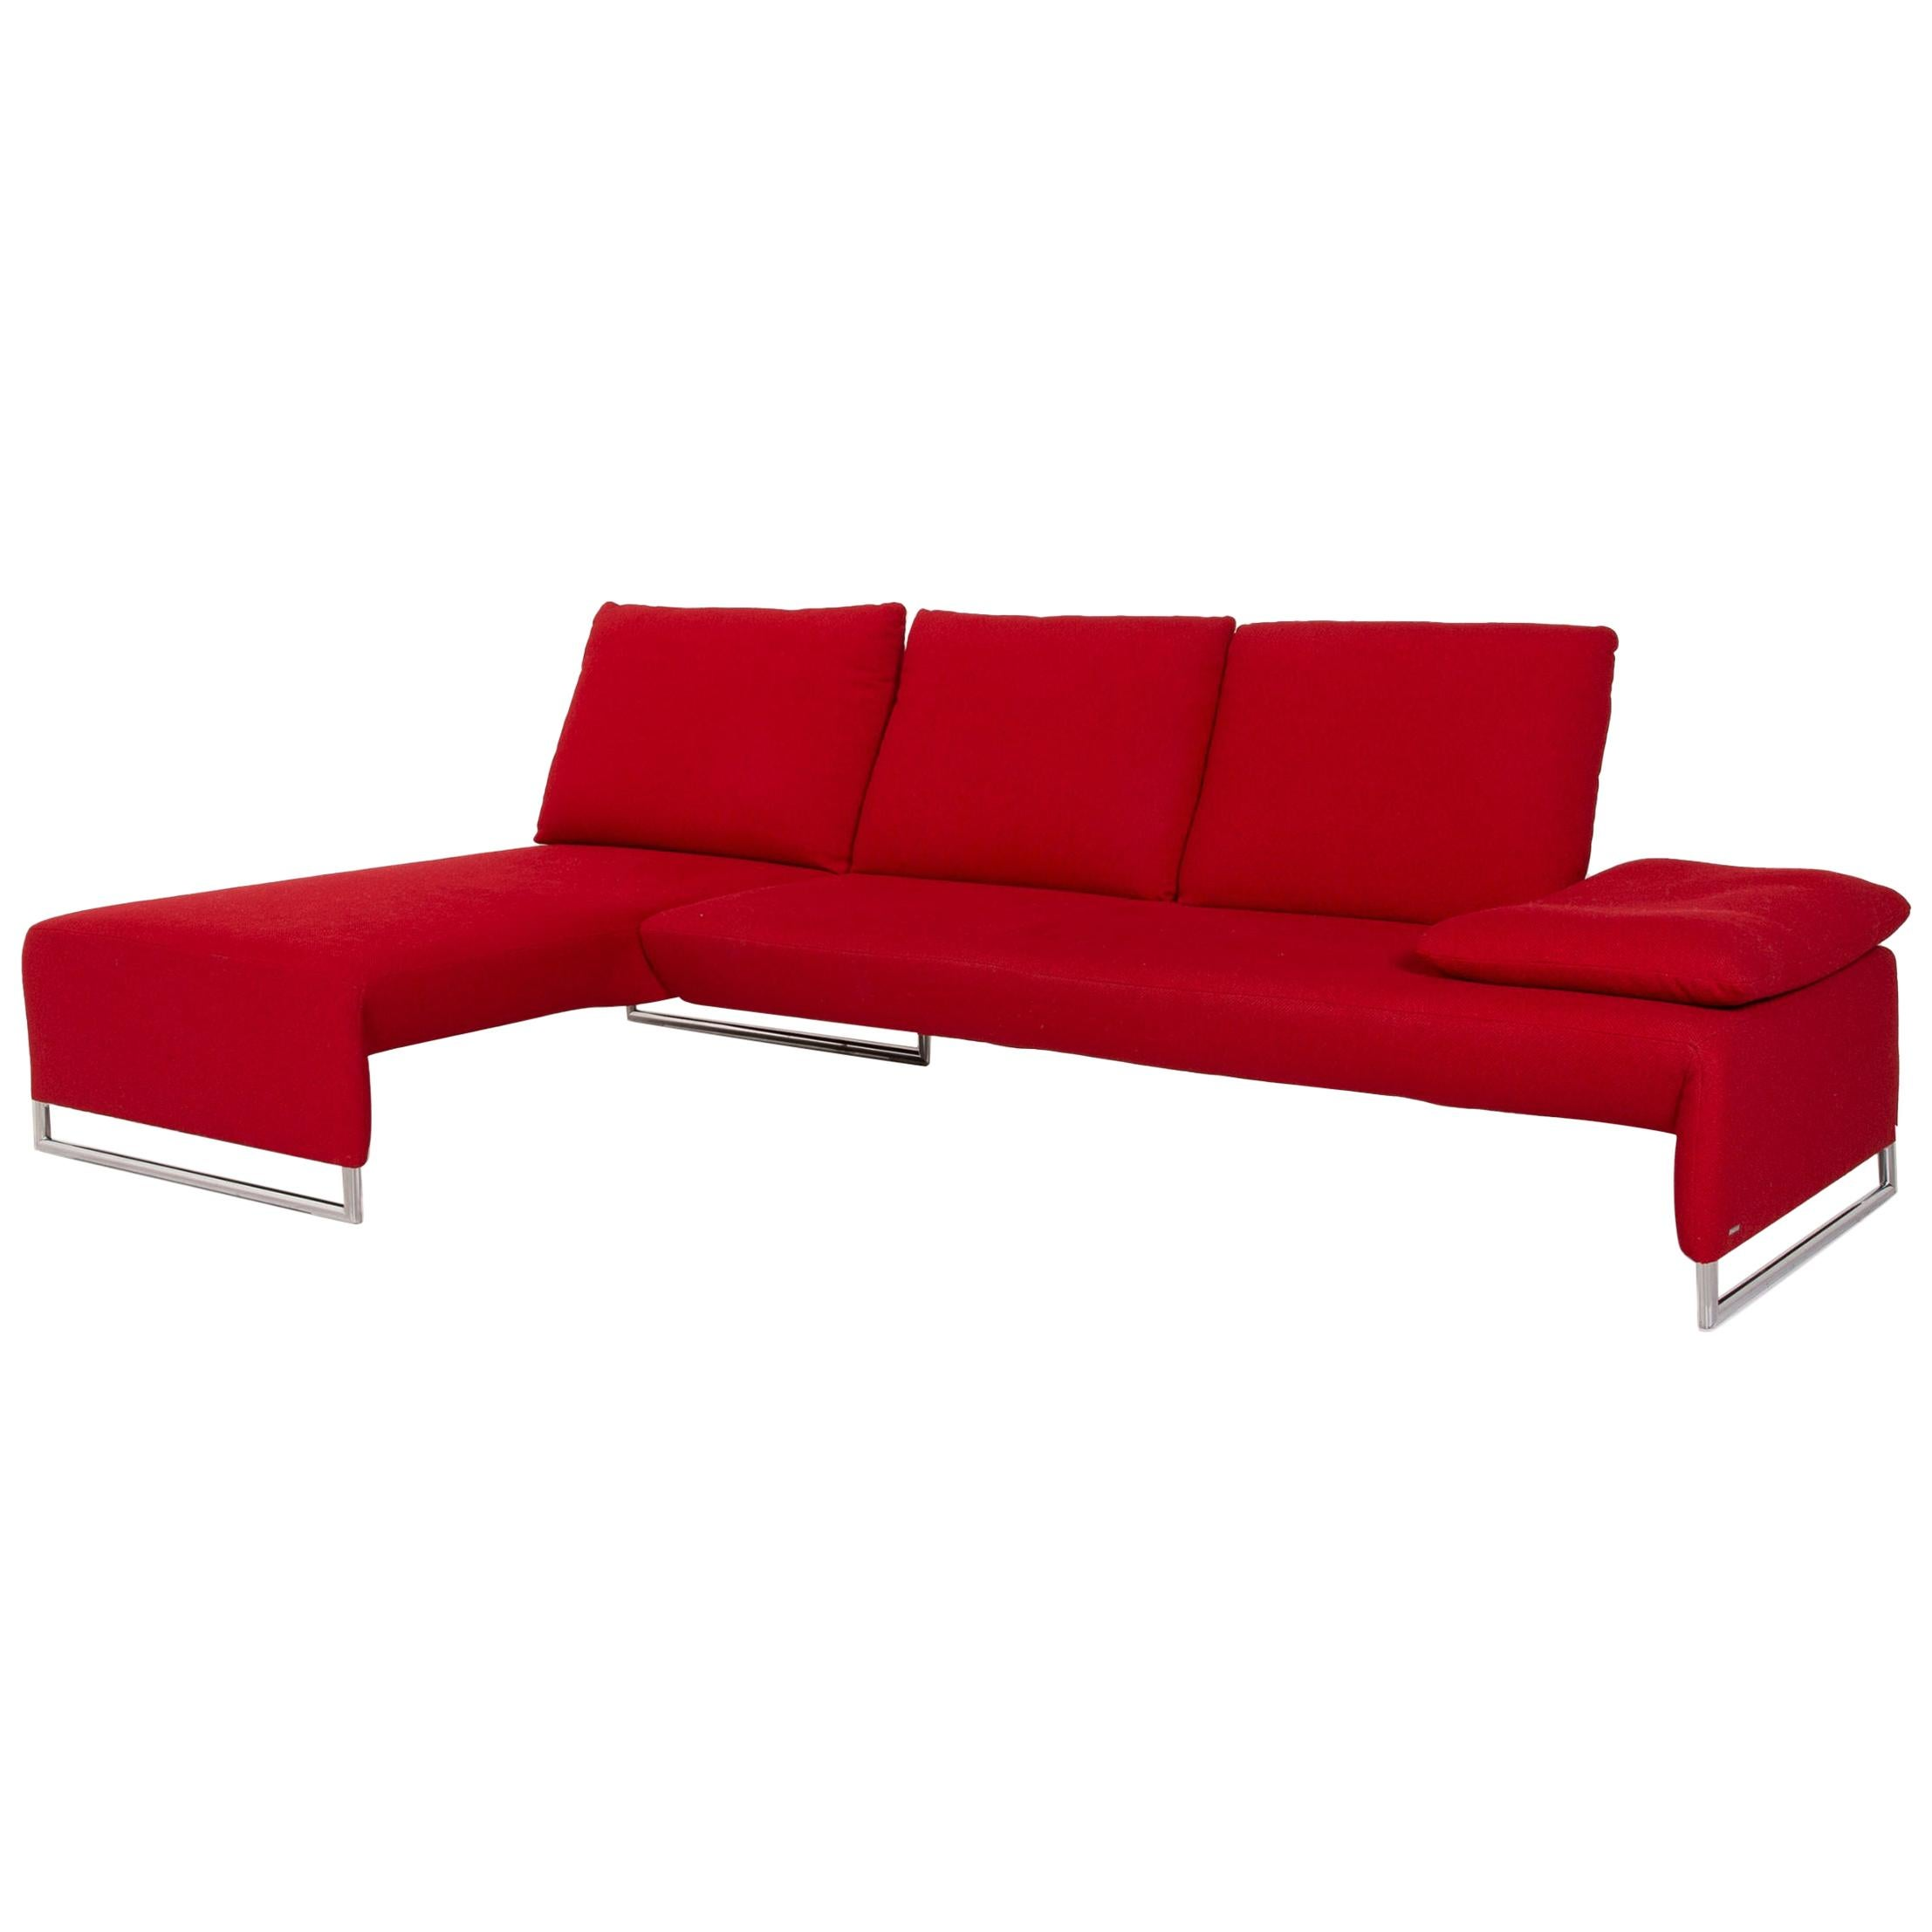 Koinor Designer Fabric Sofa Red Corner Sofa Couch